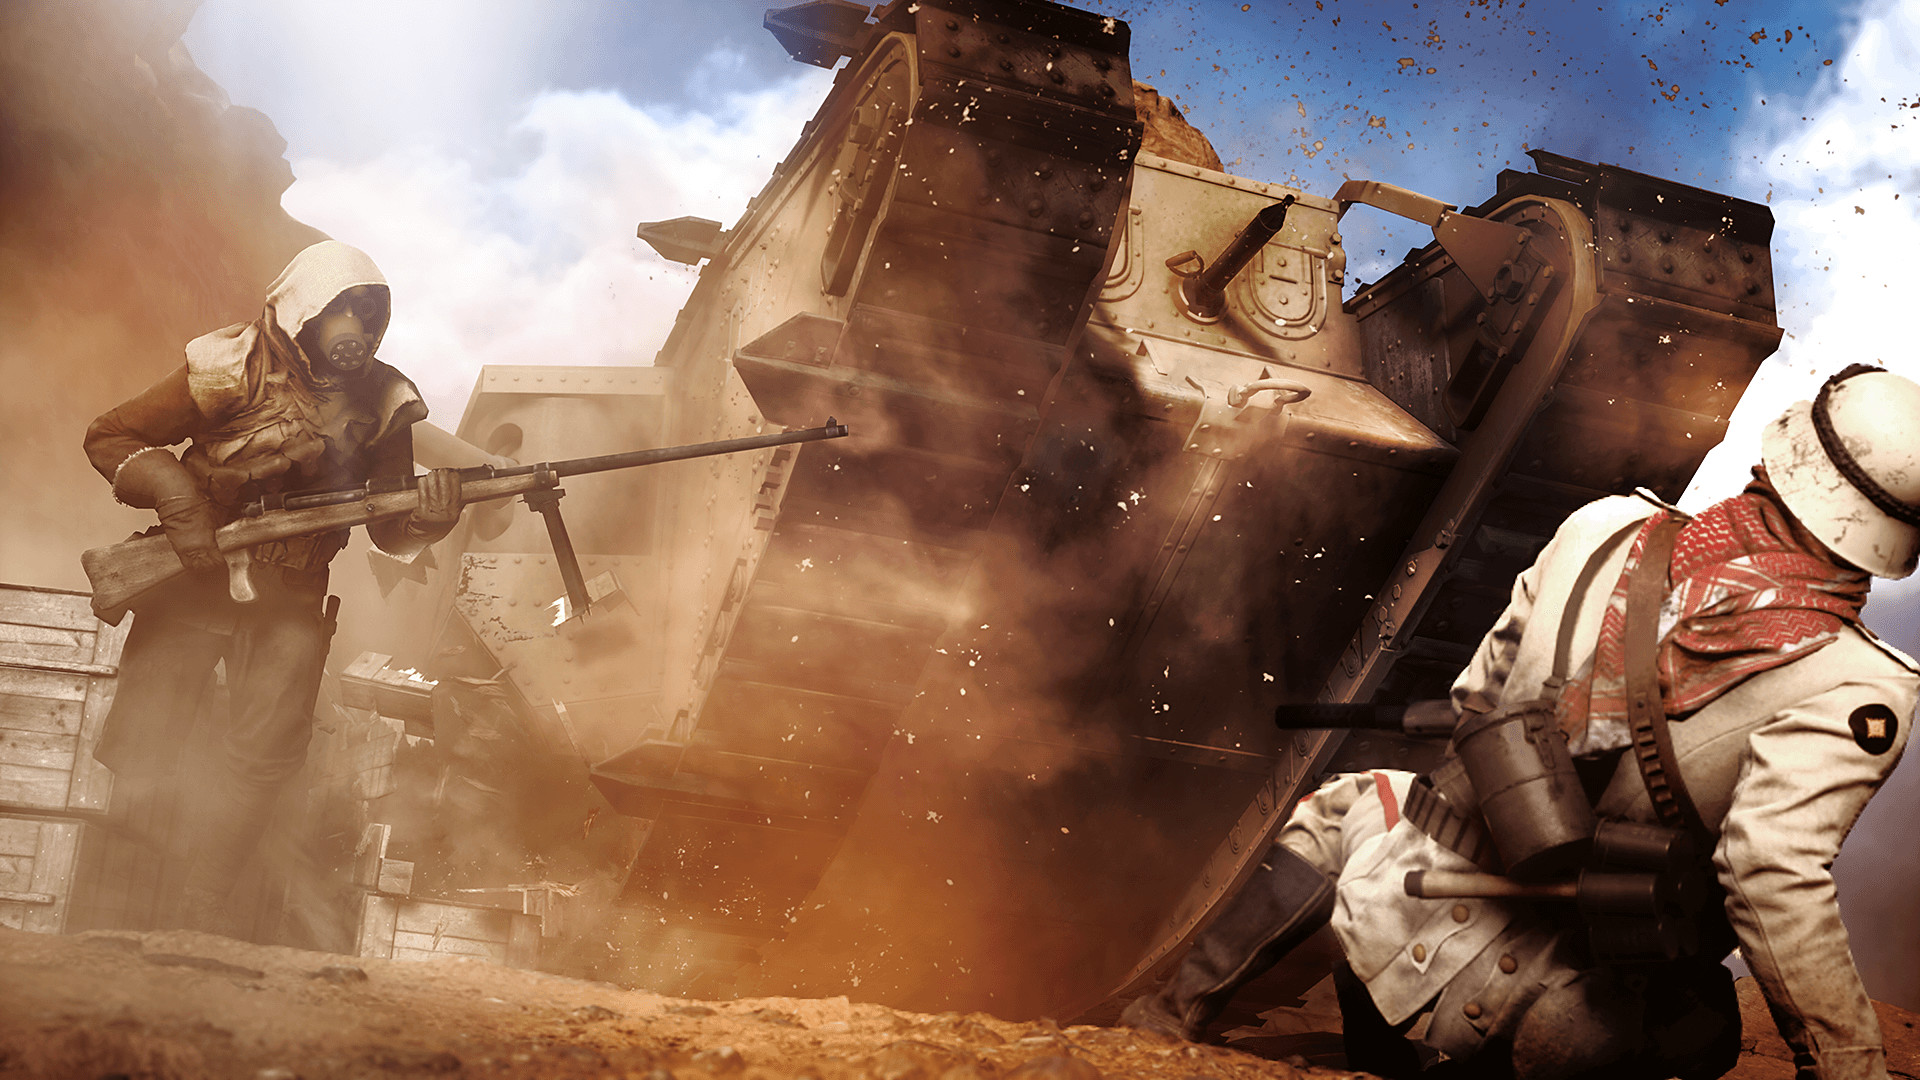 Find the best laptops for Battlefield 1 ™